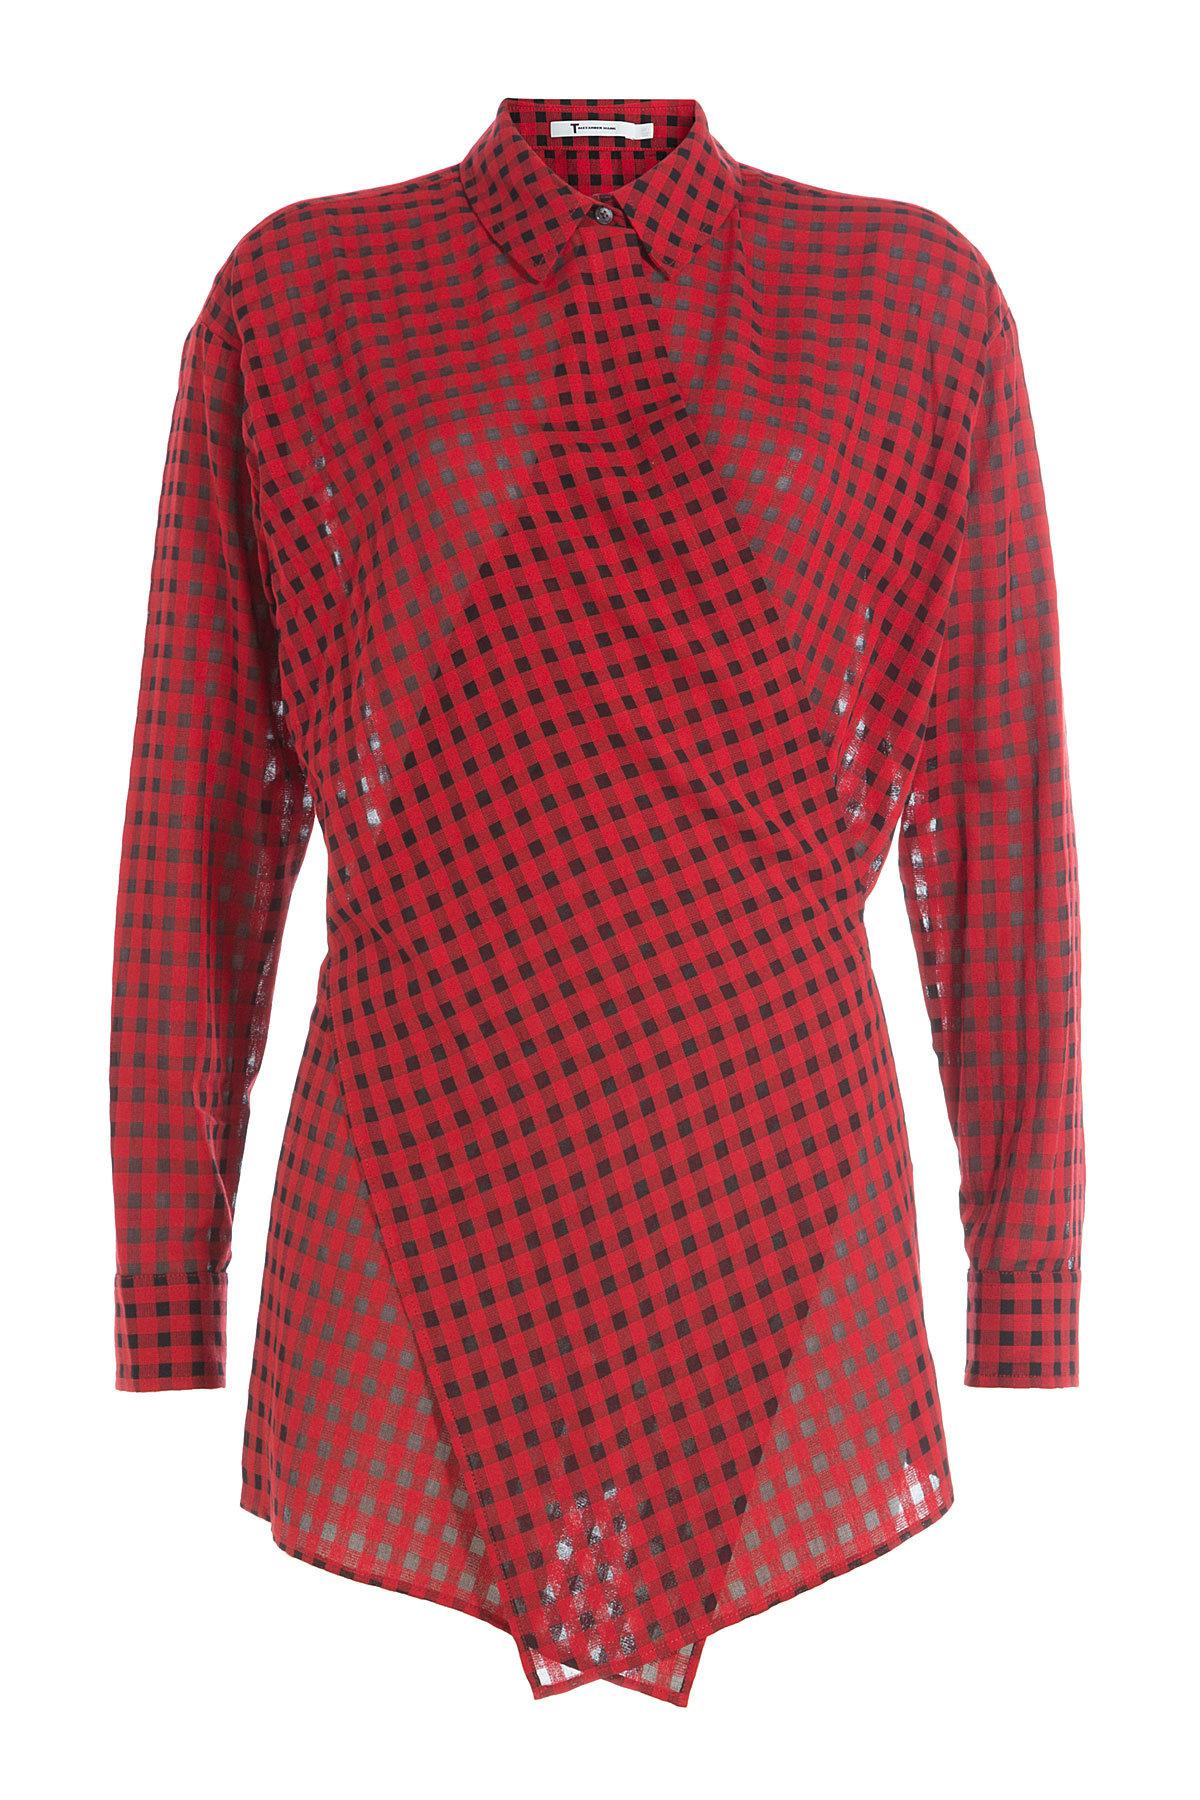 T by alexander wang wrap around printed shirt in red lyst for Wrap style t shirts